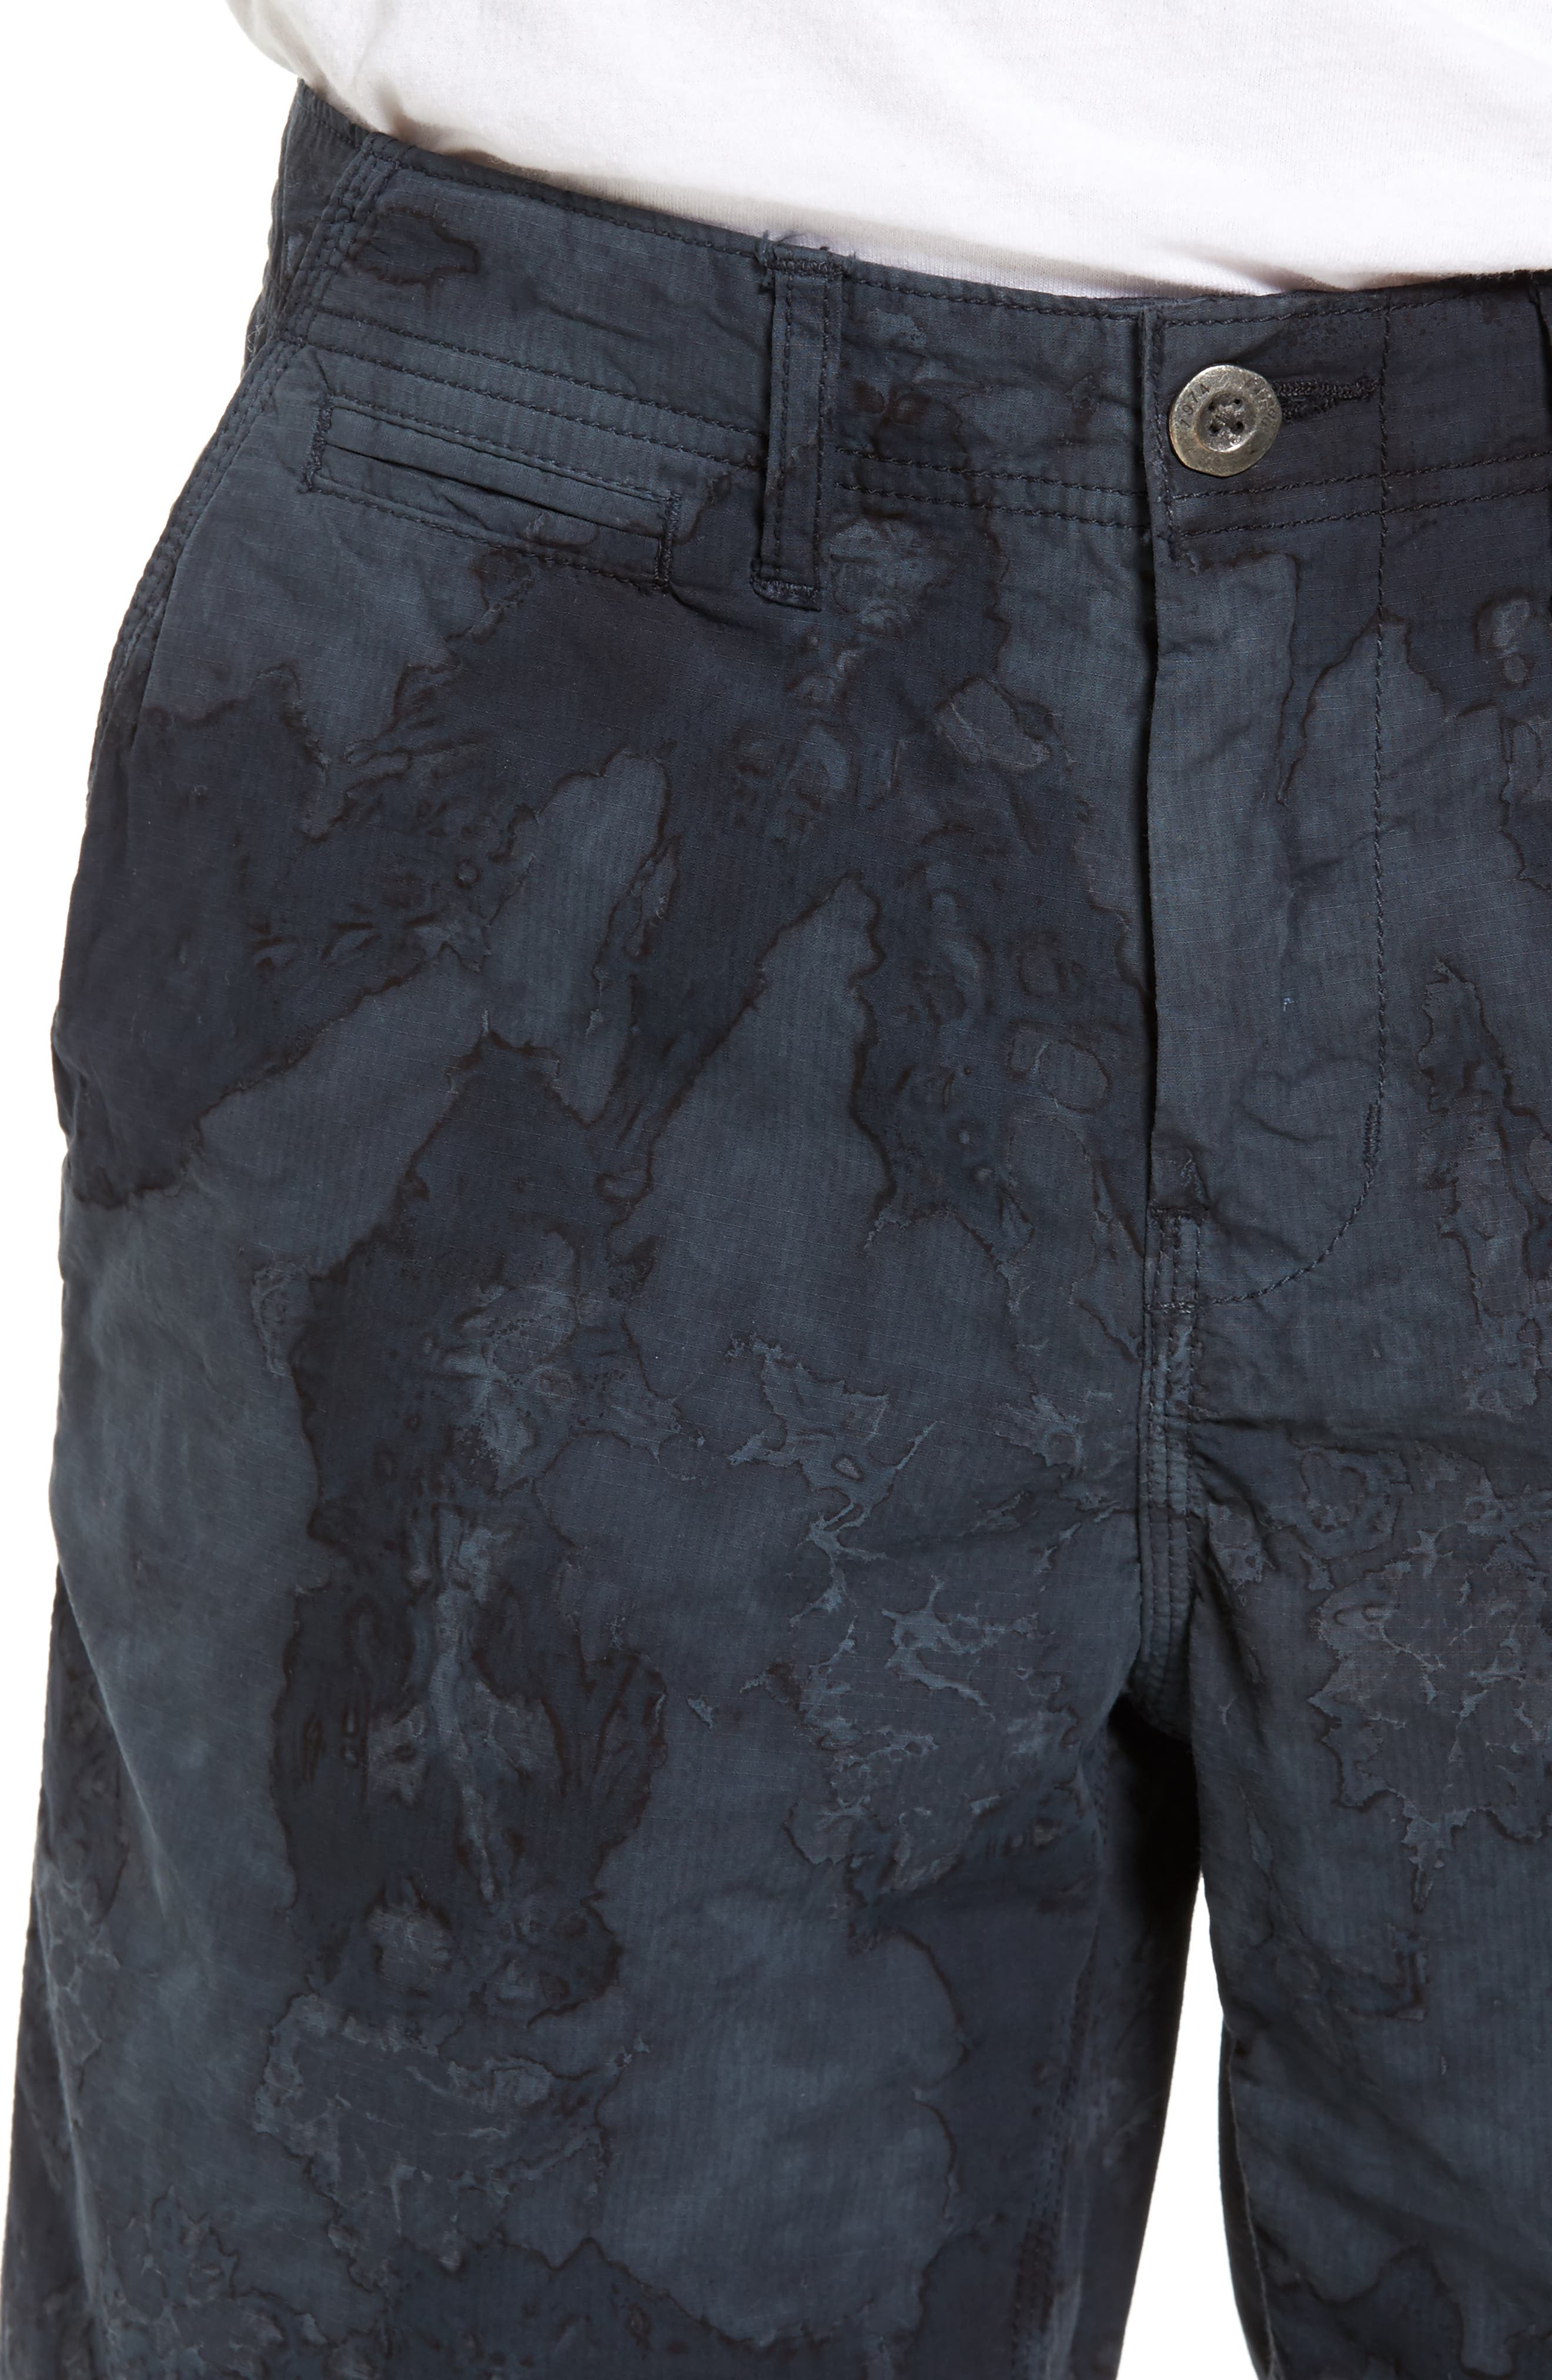 'Napa' Chino Shorts,                             Alternate thumbnail 51, color,